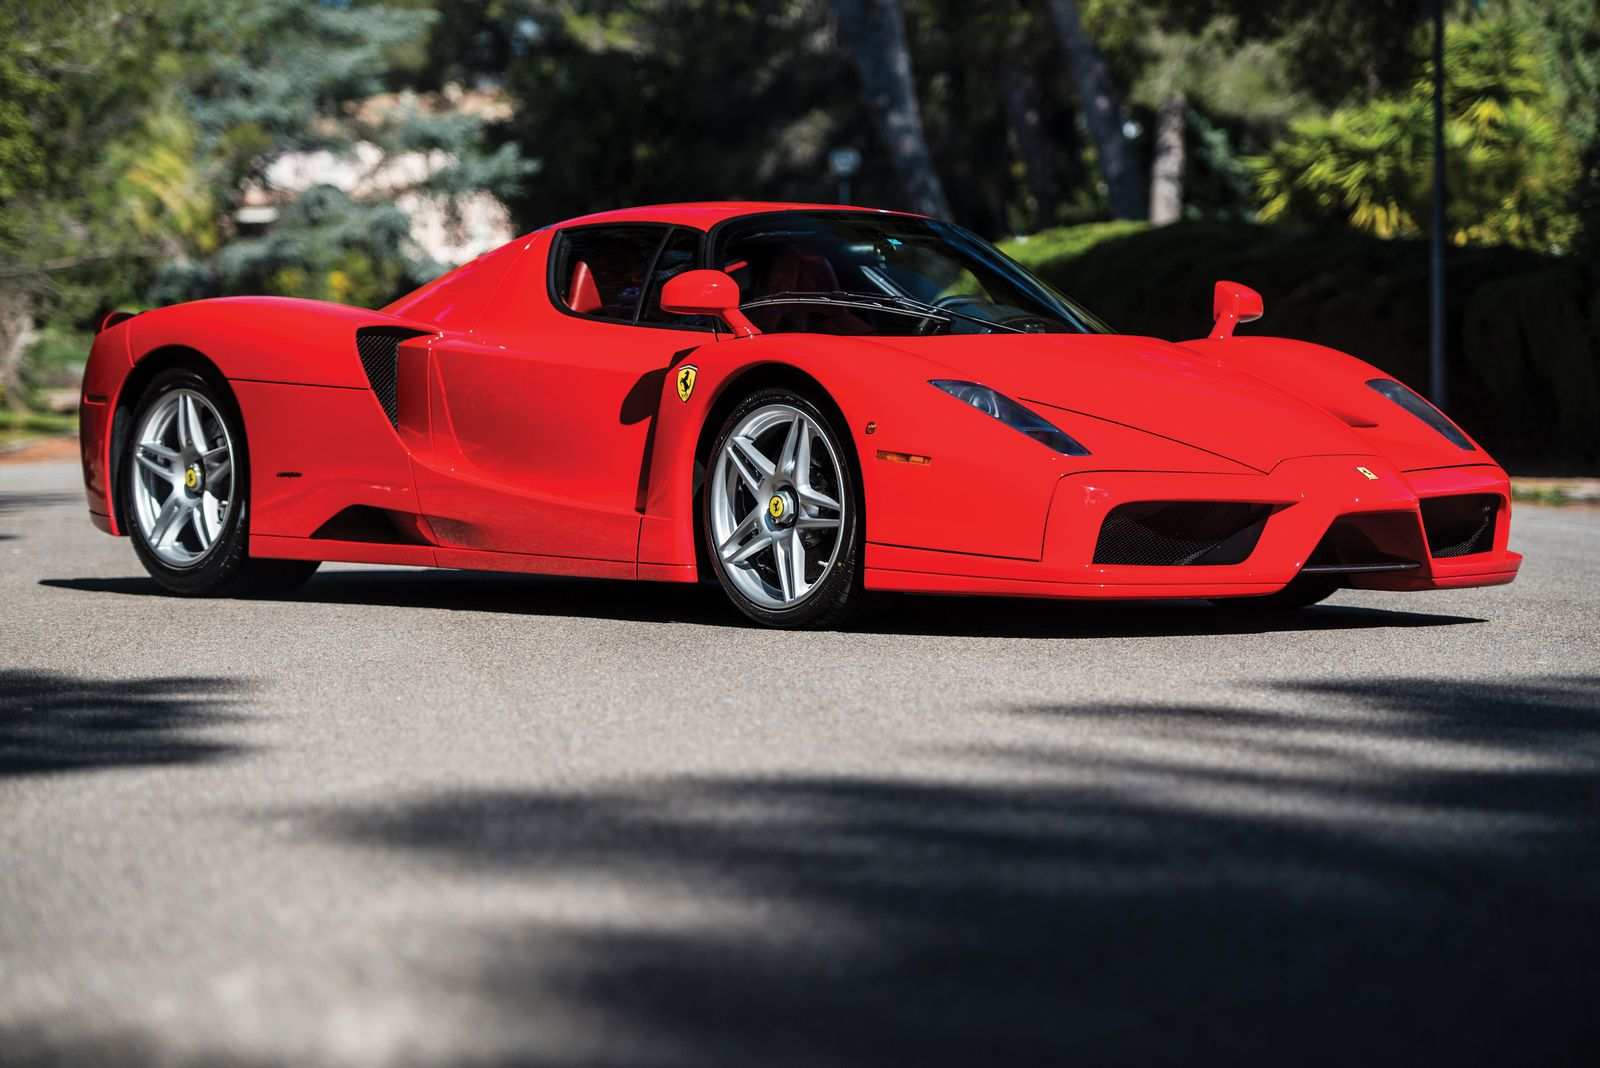 unique rosso scuderia ferrari enzo to be auctioned in may carscoops. Black Bedroom Furniture Sets. Home Design Ideas